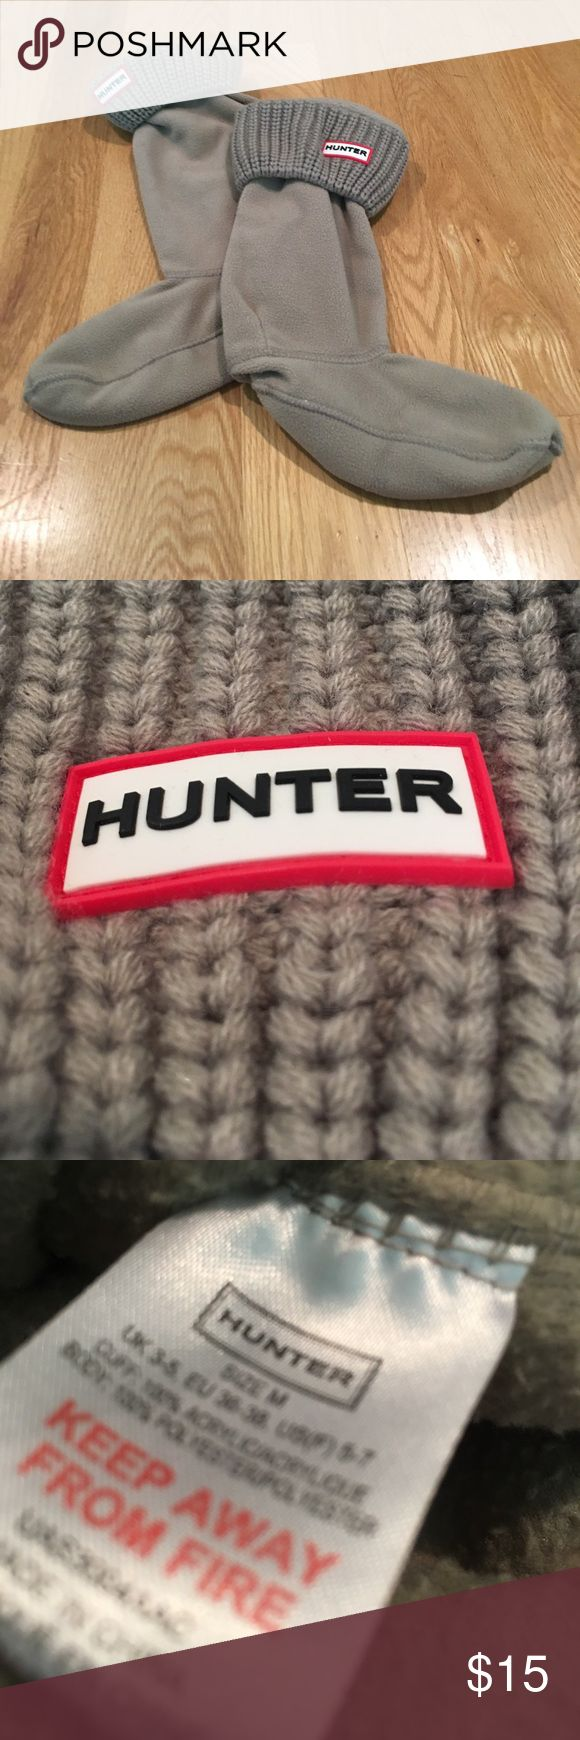 HUNTER Boot Liners with Logo & Ribbed Cuff Only used these once in my boots! Size medium. Washed once. Desc: You'll stay cozy and warm wearing these clever boot socks, cut from softest fleece and finished with a foldover ribbed-knit cuff. Hunter Shoes Winter & Rain Boots